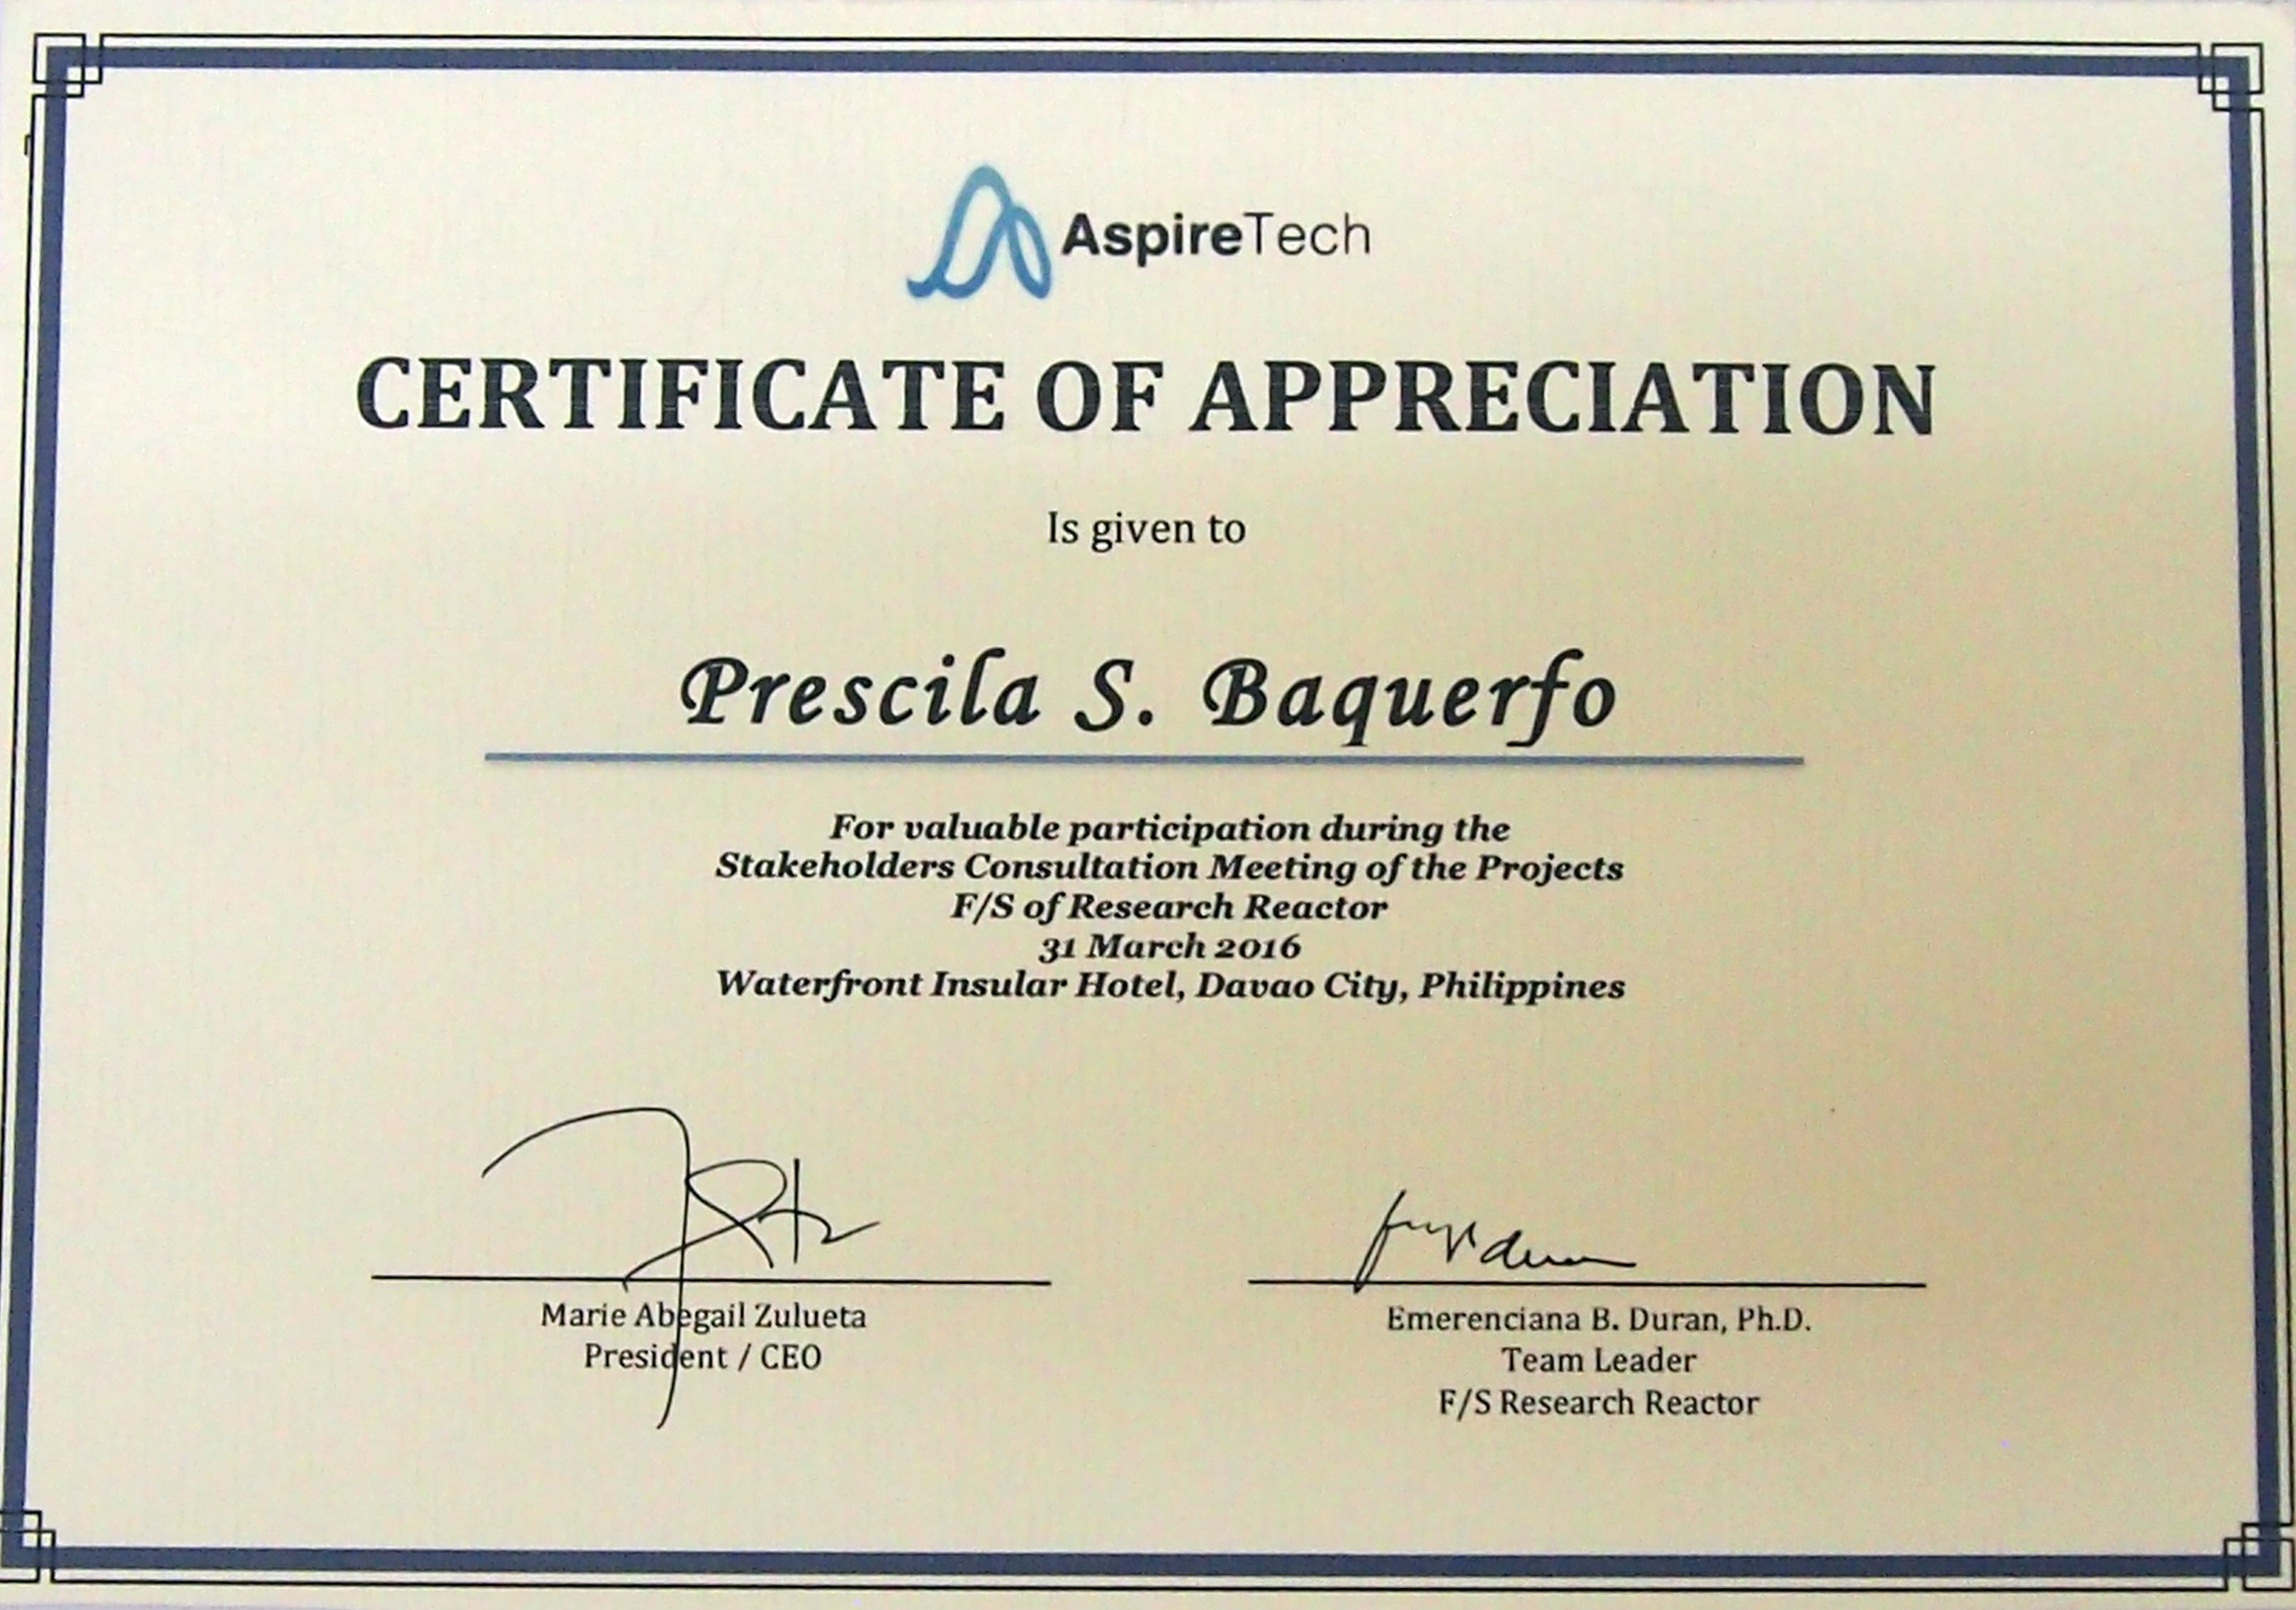 Sample certificate of appreciation for leadership images sample certificate of appreciation for leadership image sample certificate of appreciation for leadership image sample certificate yelopaper Image collections